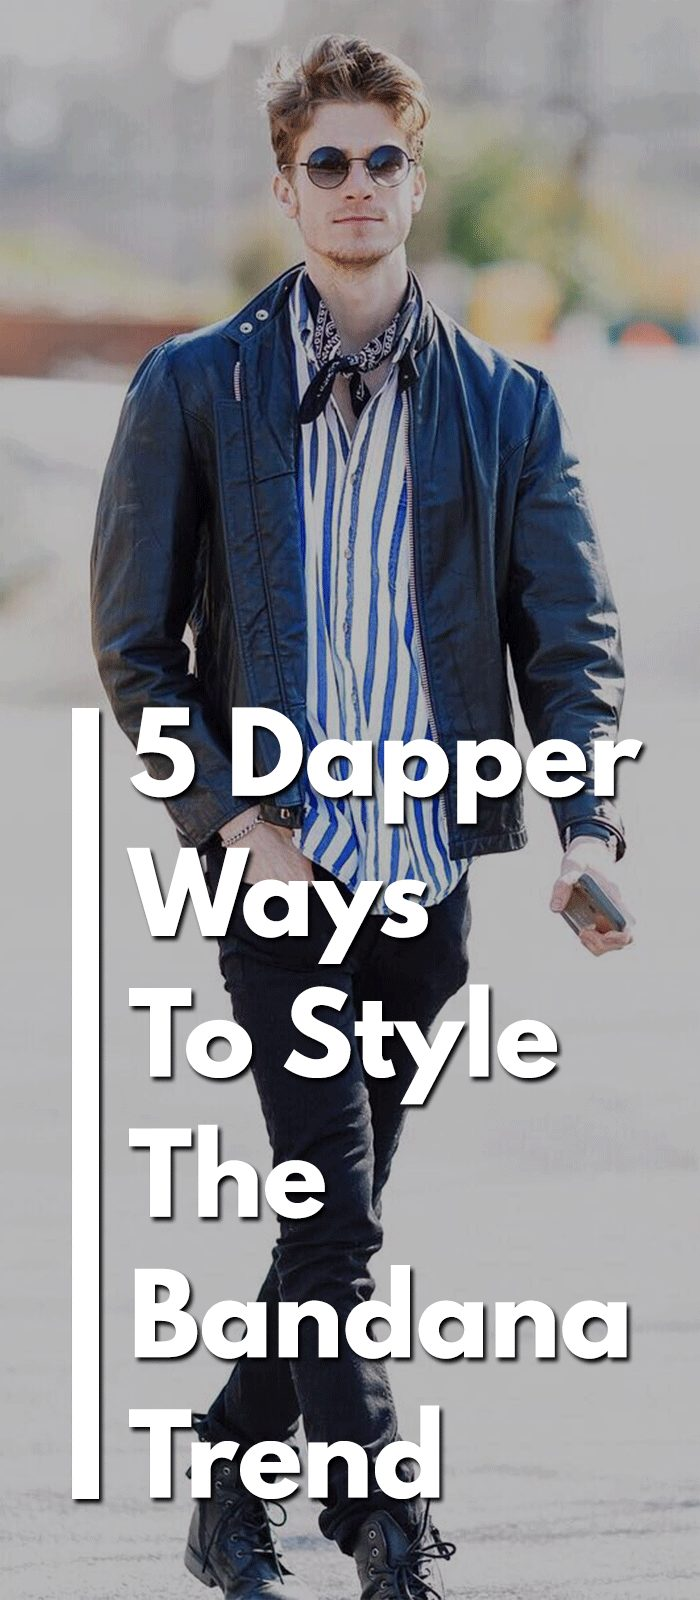 5 Dapper Ways To Style The Bandana Trend